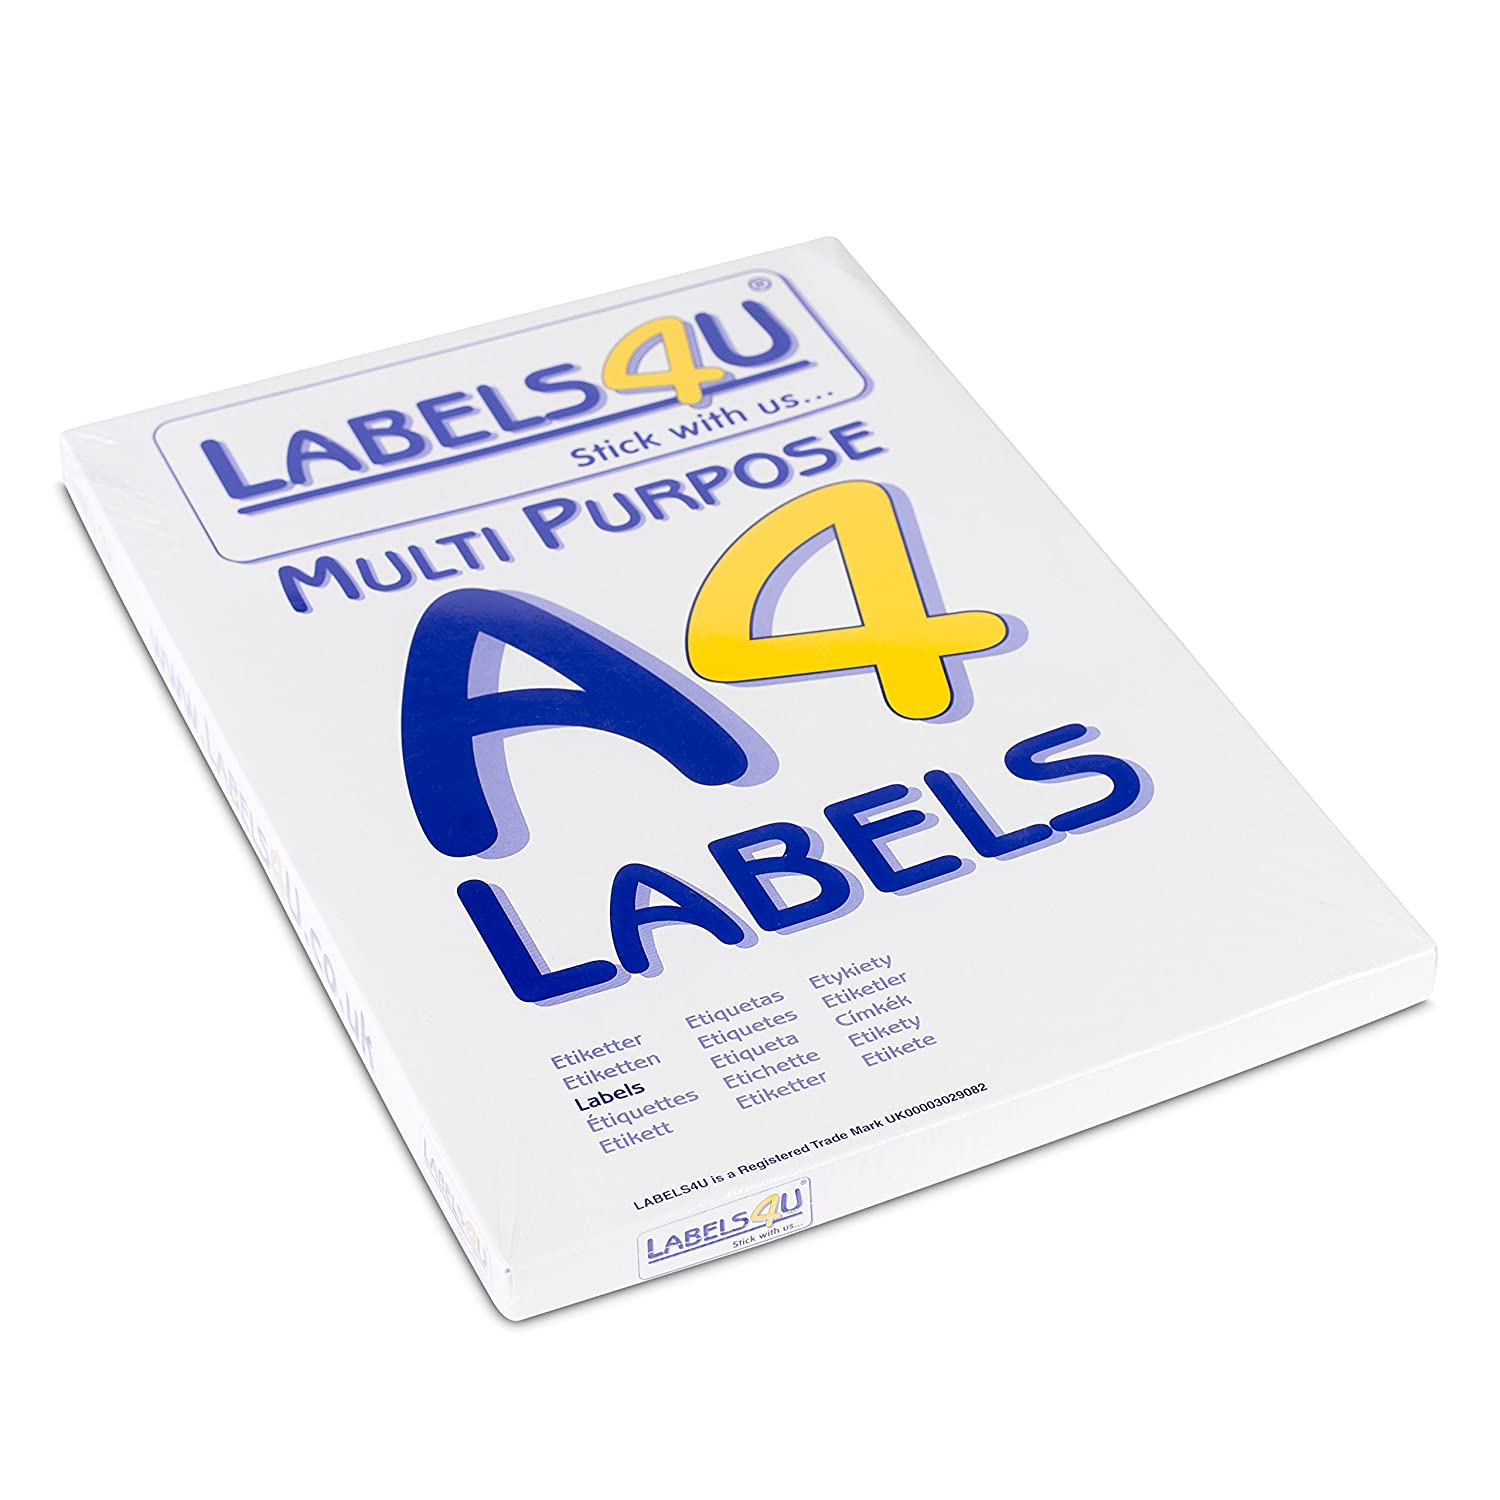 84 Labels per page X 100 Sheets White Blank Multi function Self-Adhesive A LABELS4U /®TM Branded Product Printable with Copier MS Compatible L7656 Compatible 46mm X 11.1mm Laser or Inkjet Printer